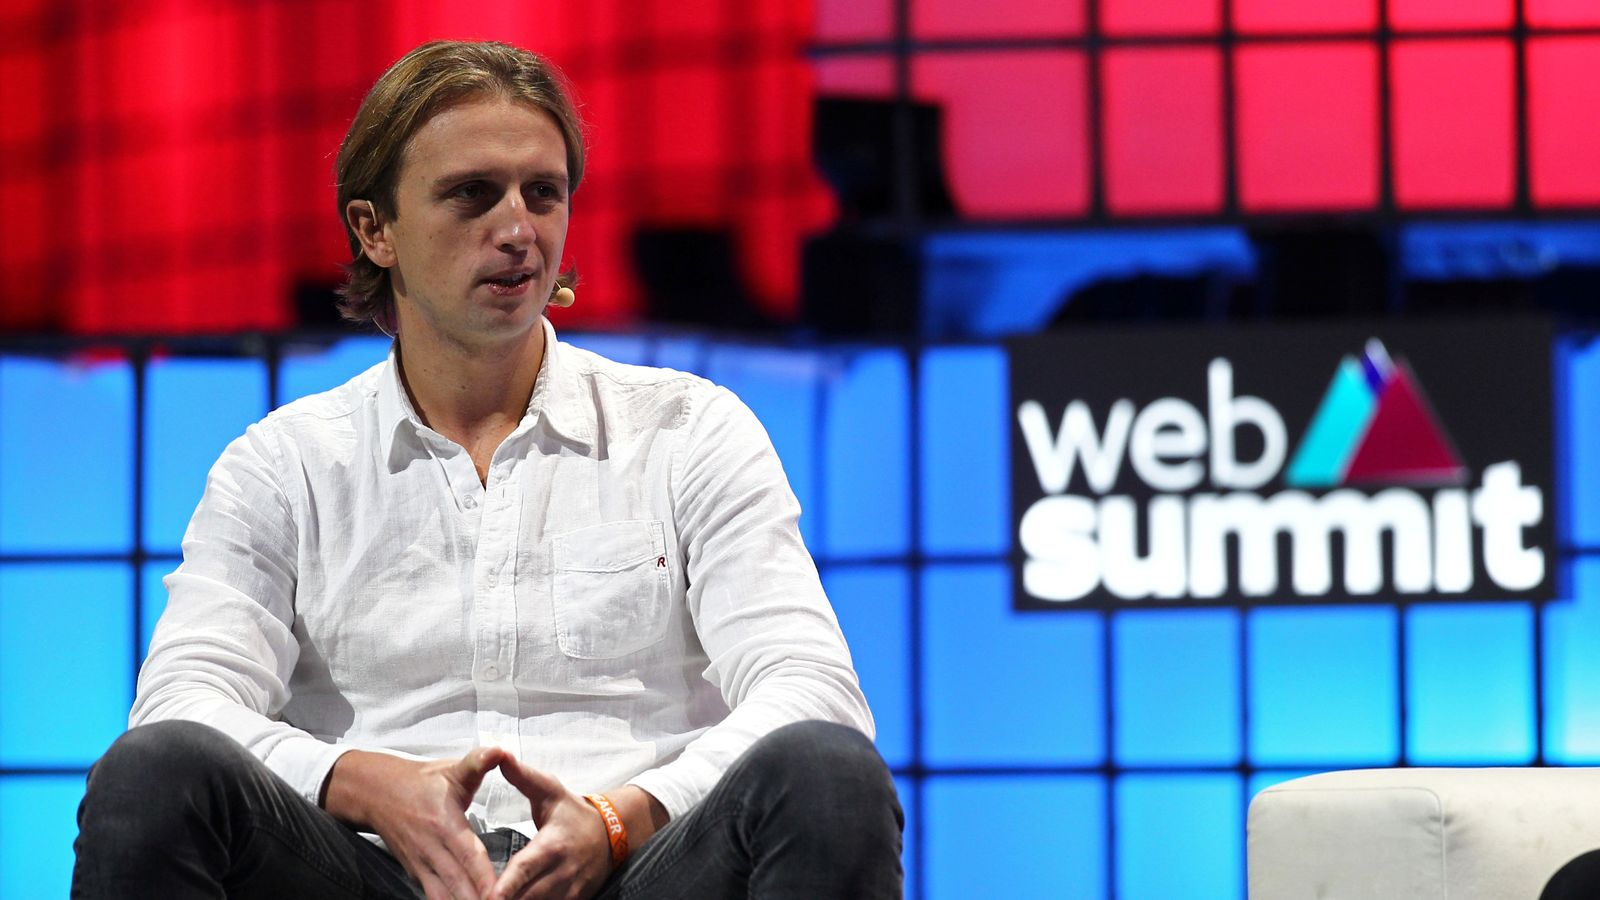 Revolut eyes $10bn valuation with new share sale